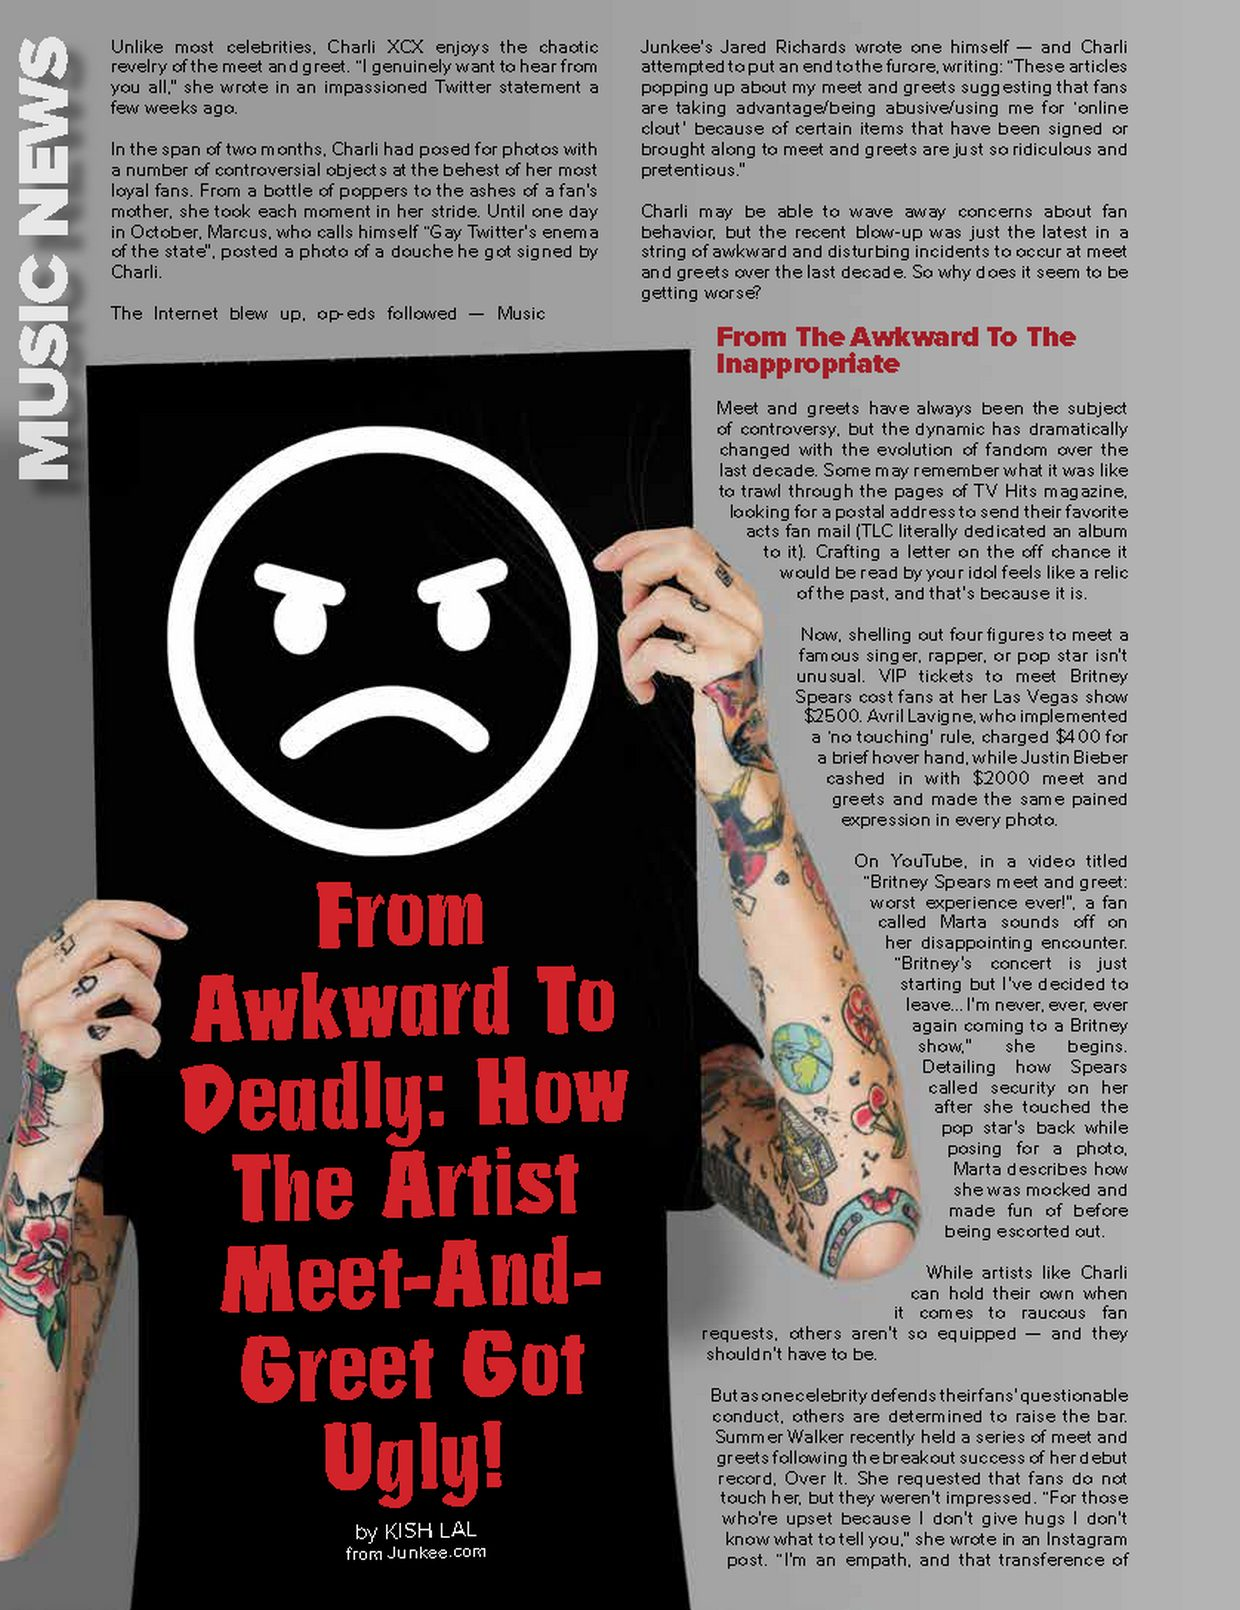 From Awkward To Deadly: How The Artist Meet-AndGreet Got Ugly!